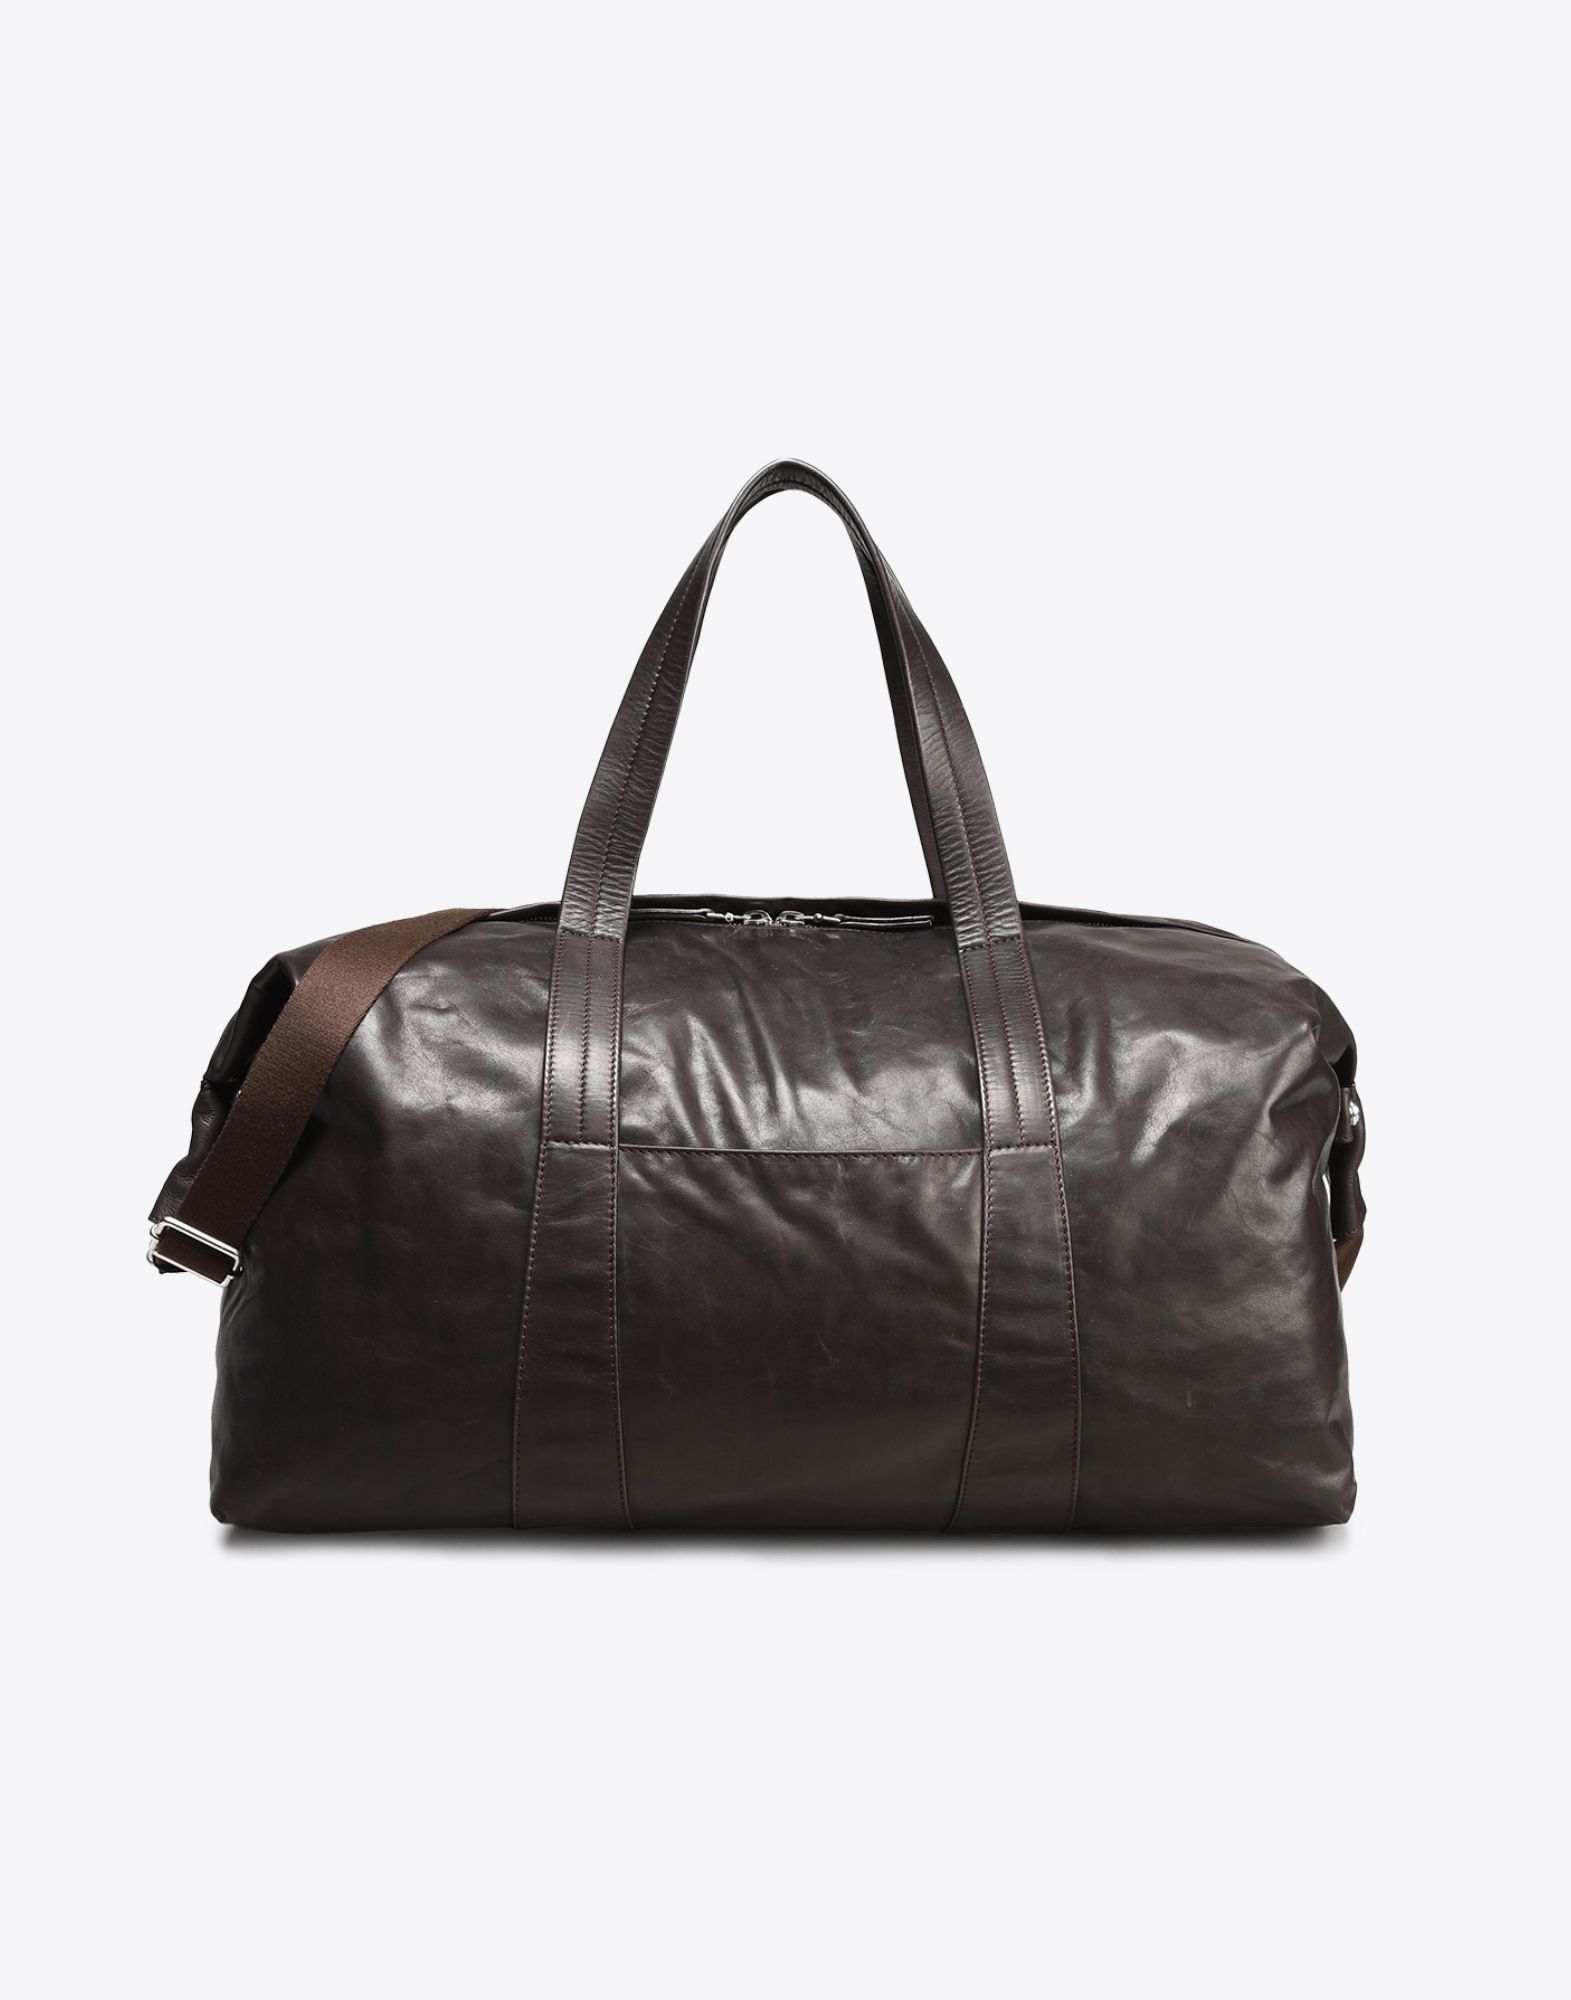 Maison Margiela Lightweight Weekend Bag In Brown For Men